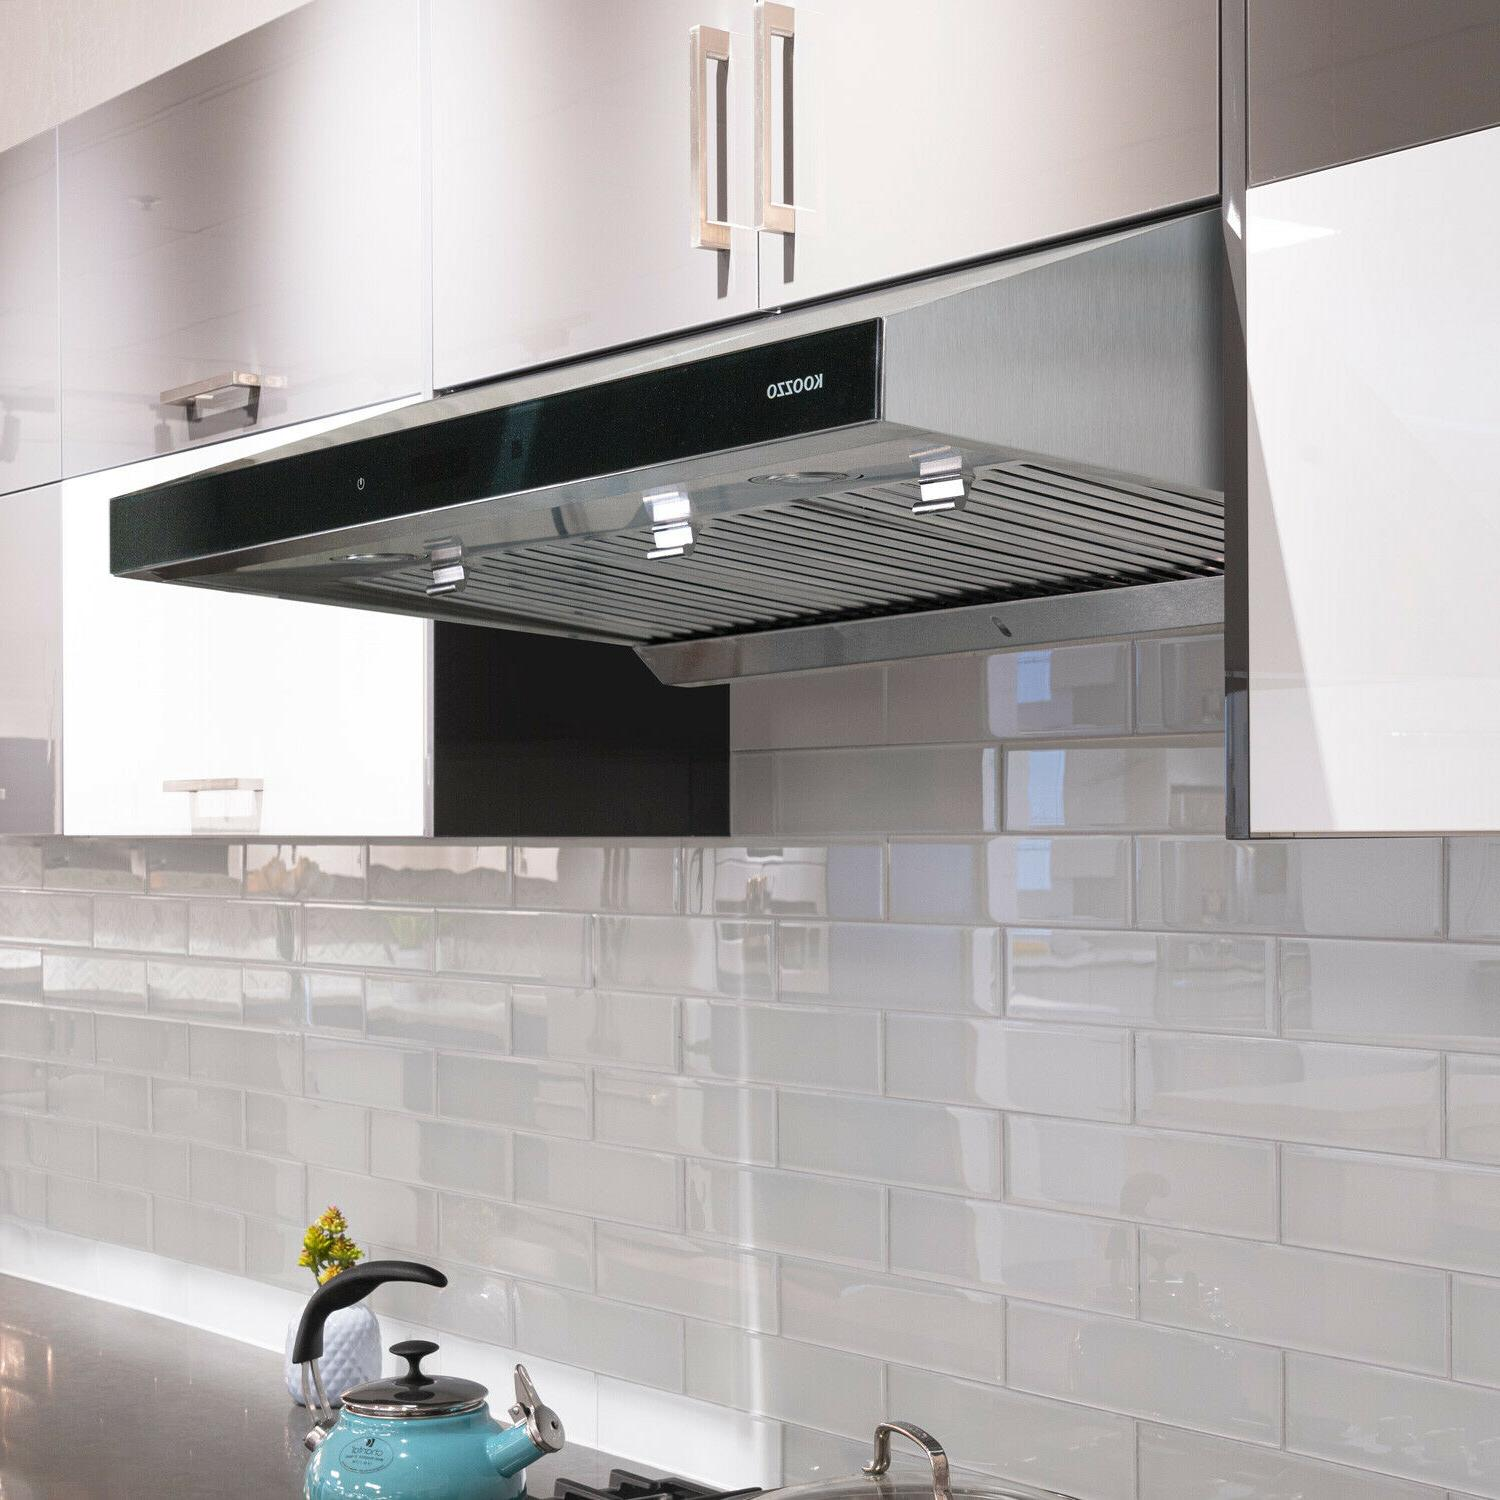 30 36 ducted under cabinet stainless steel